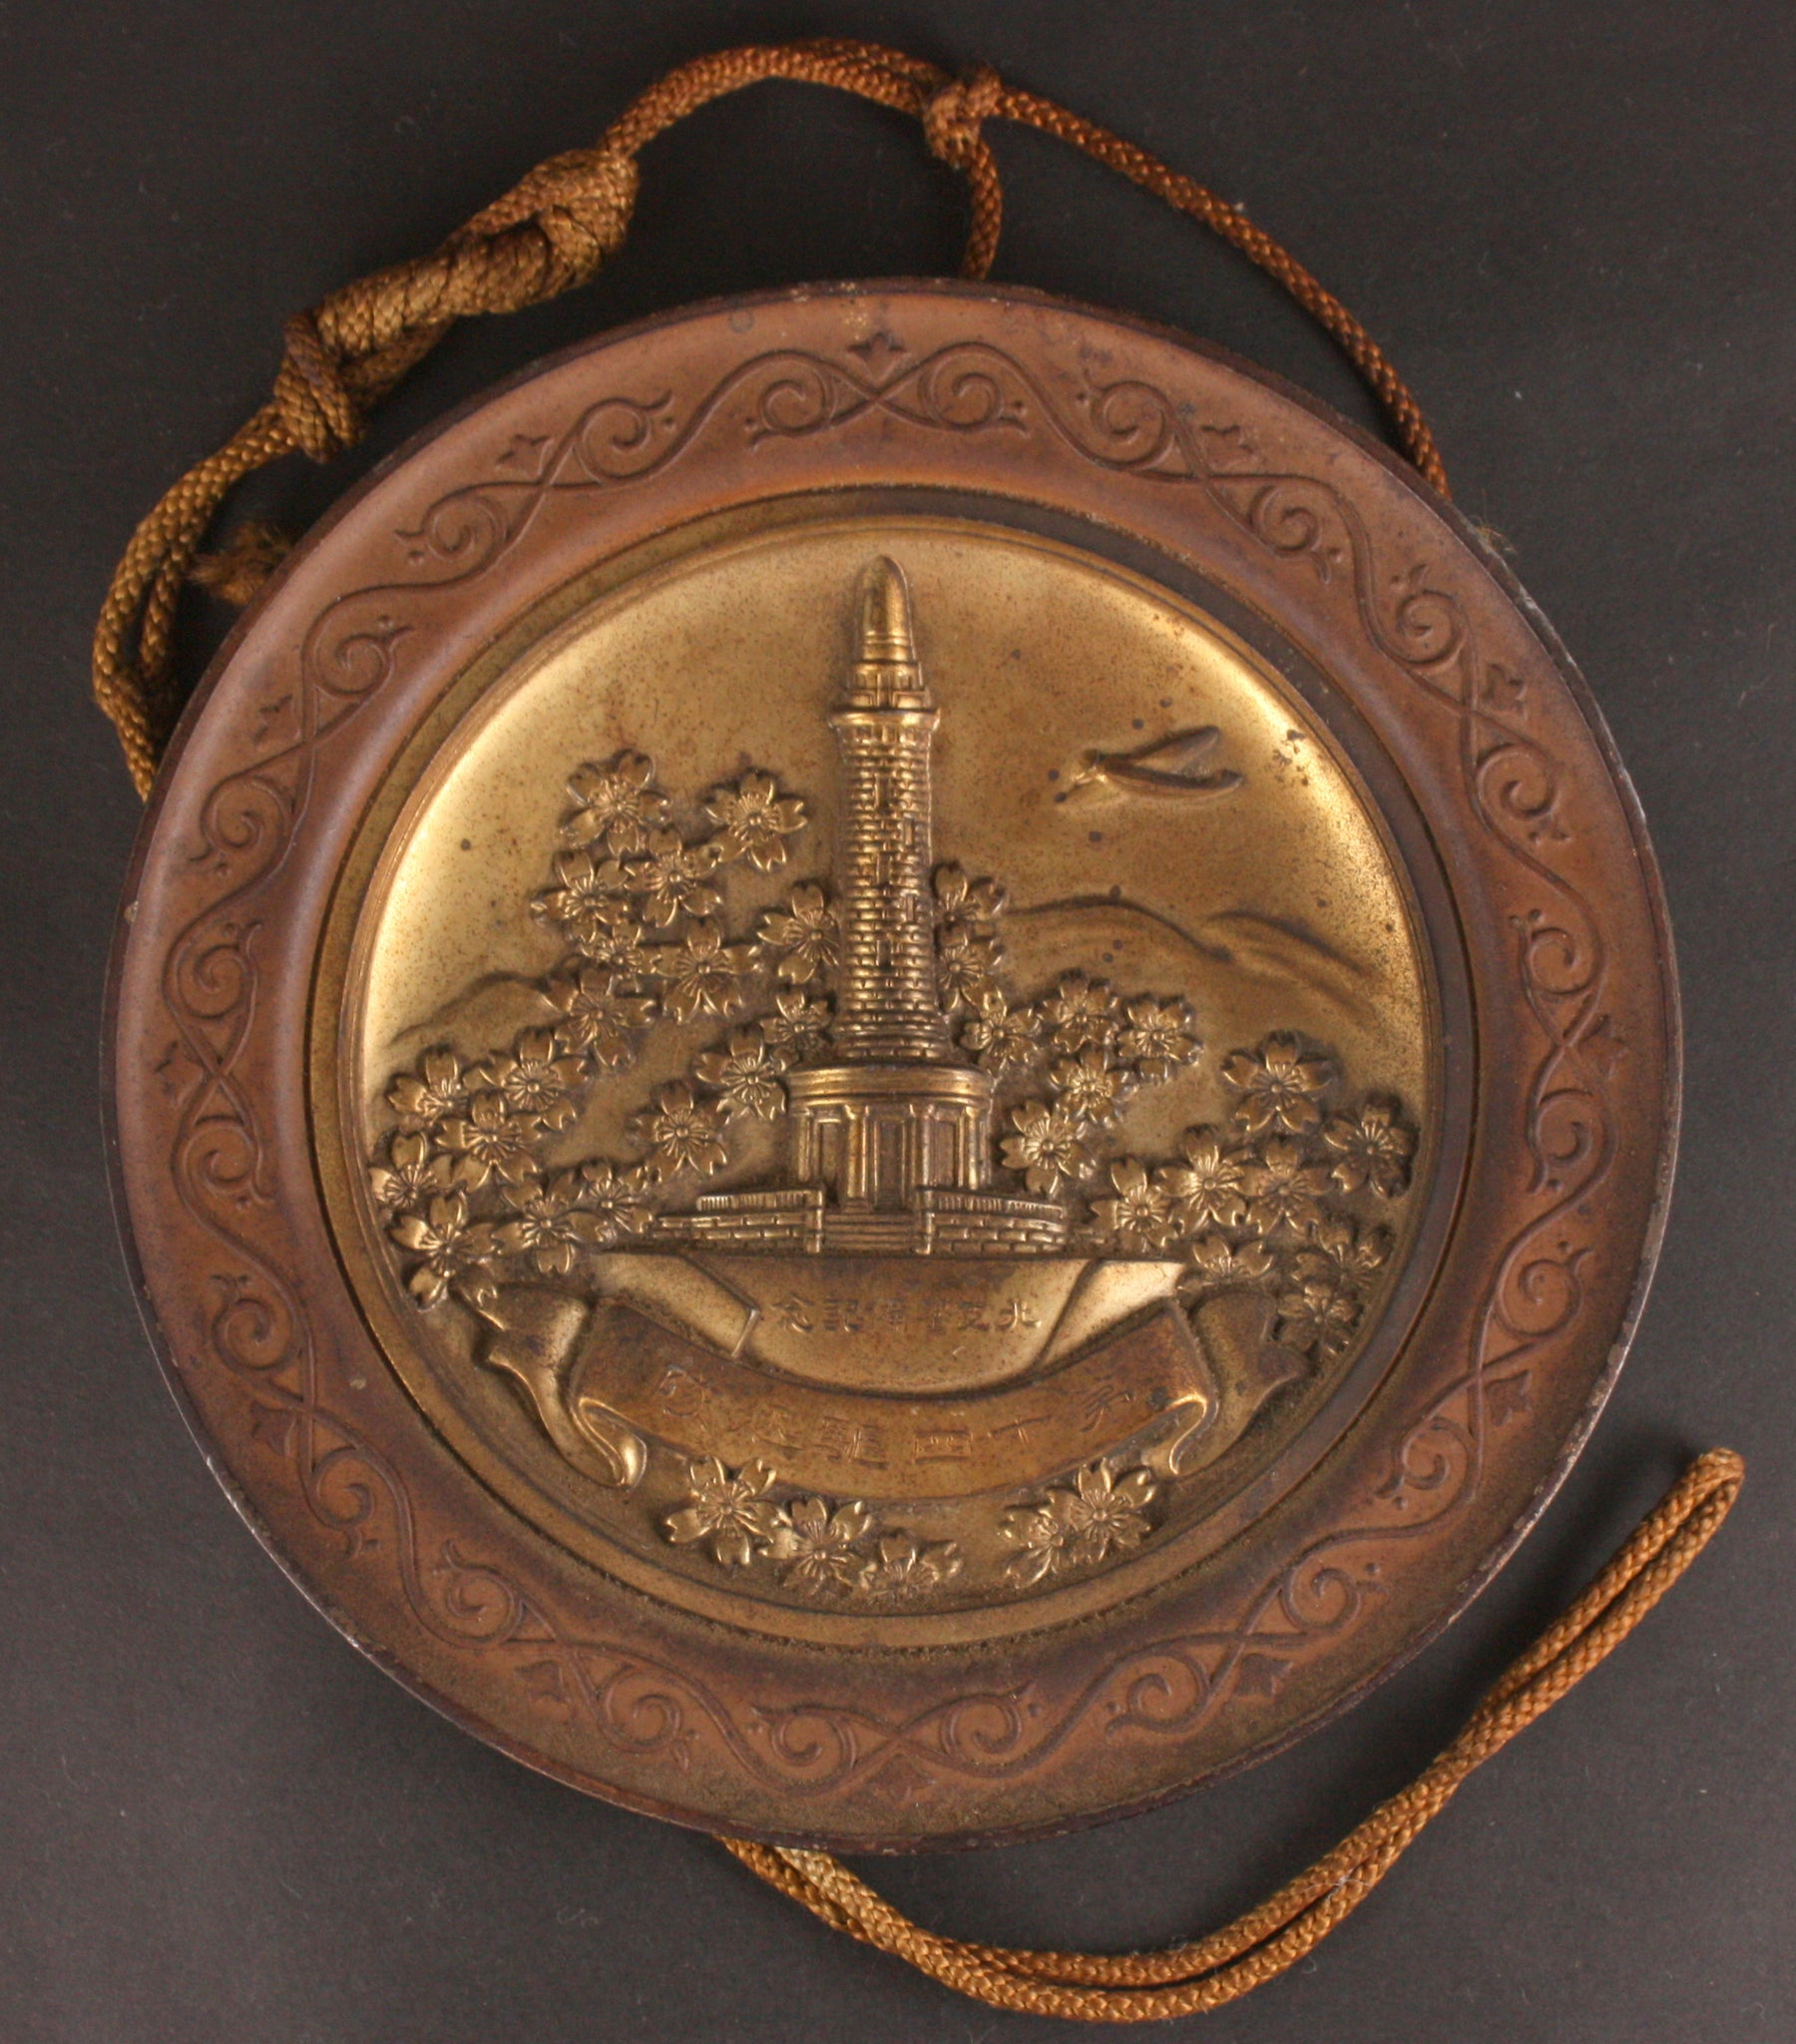 Very Rare Antique Japanese 14th Destroyer Squadron North China Patrol Commemorative Dish